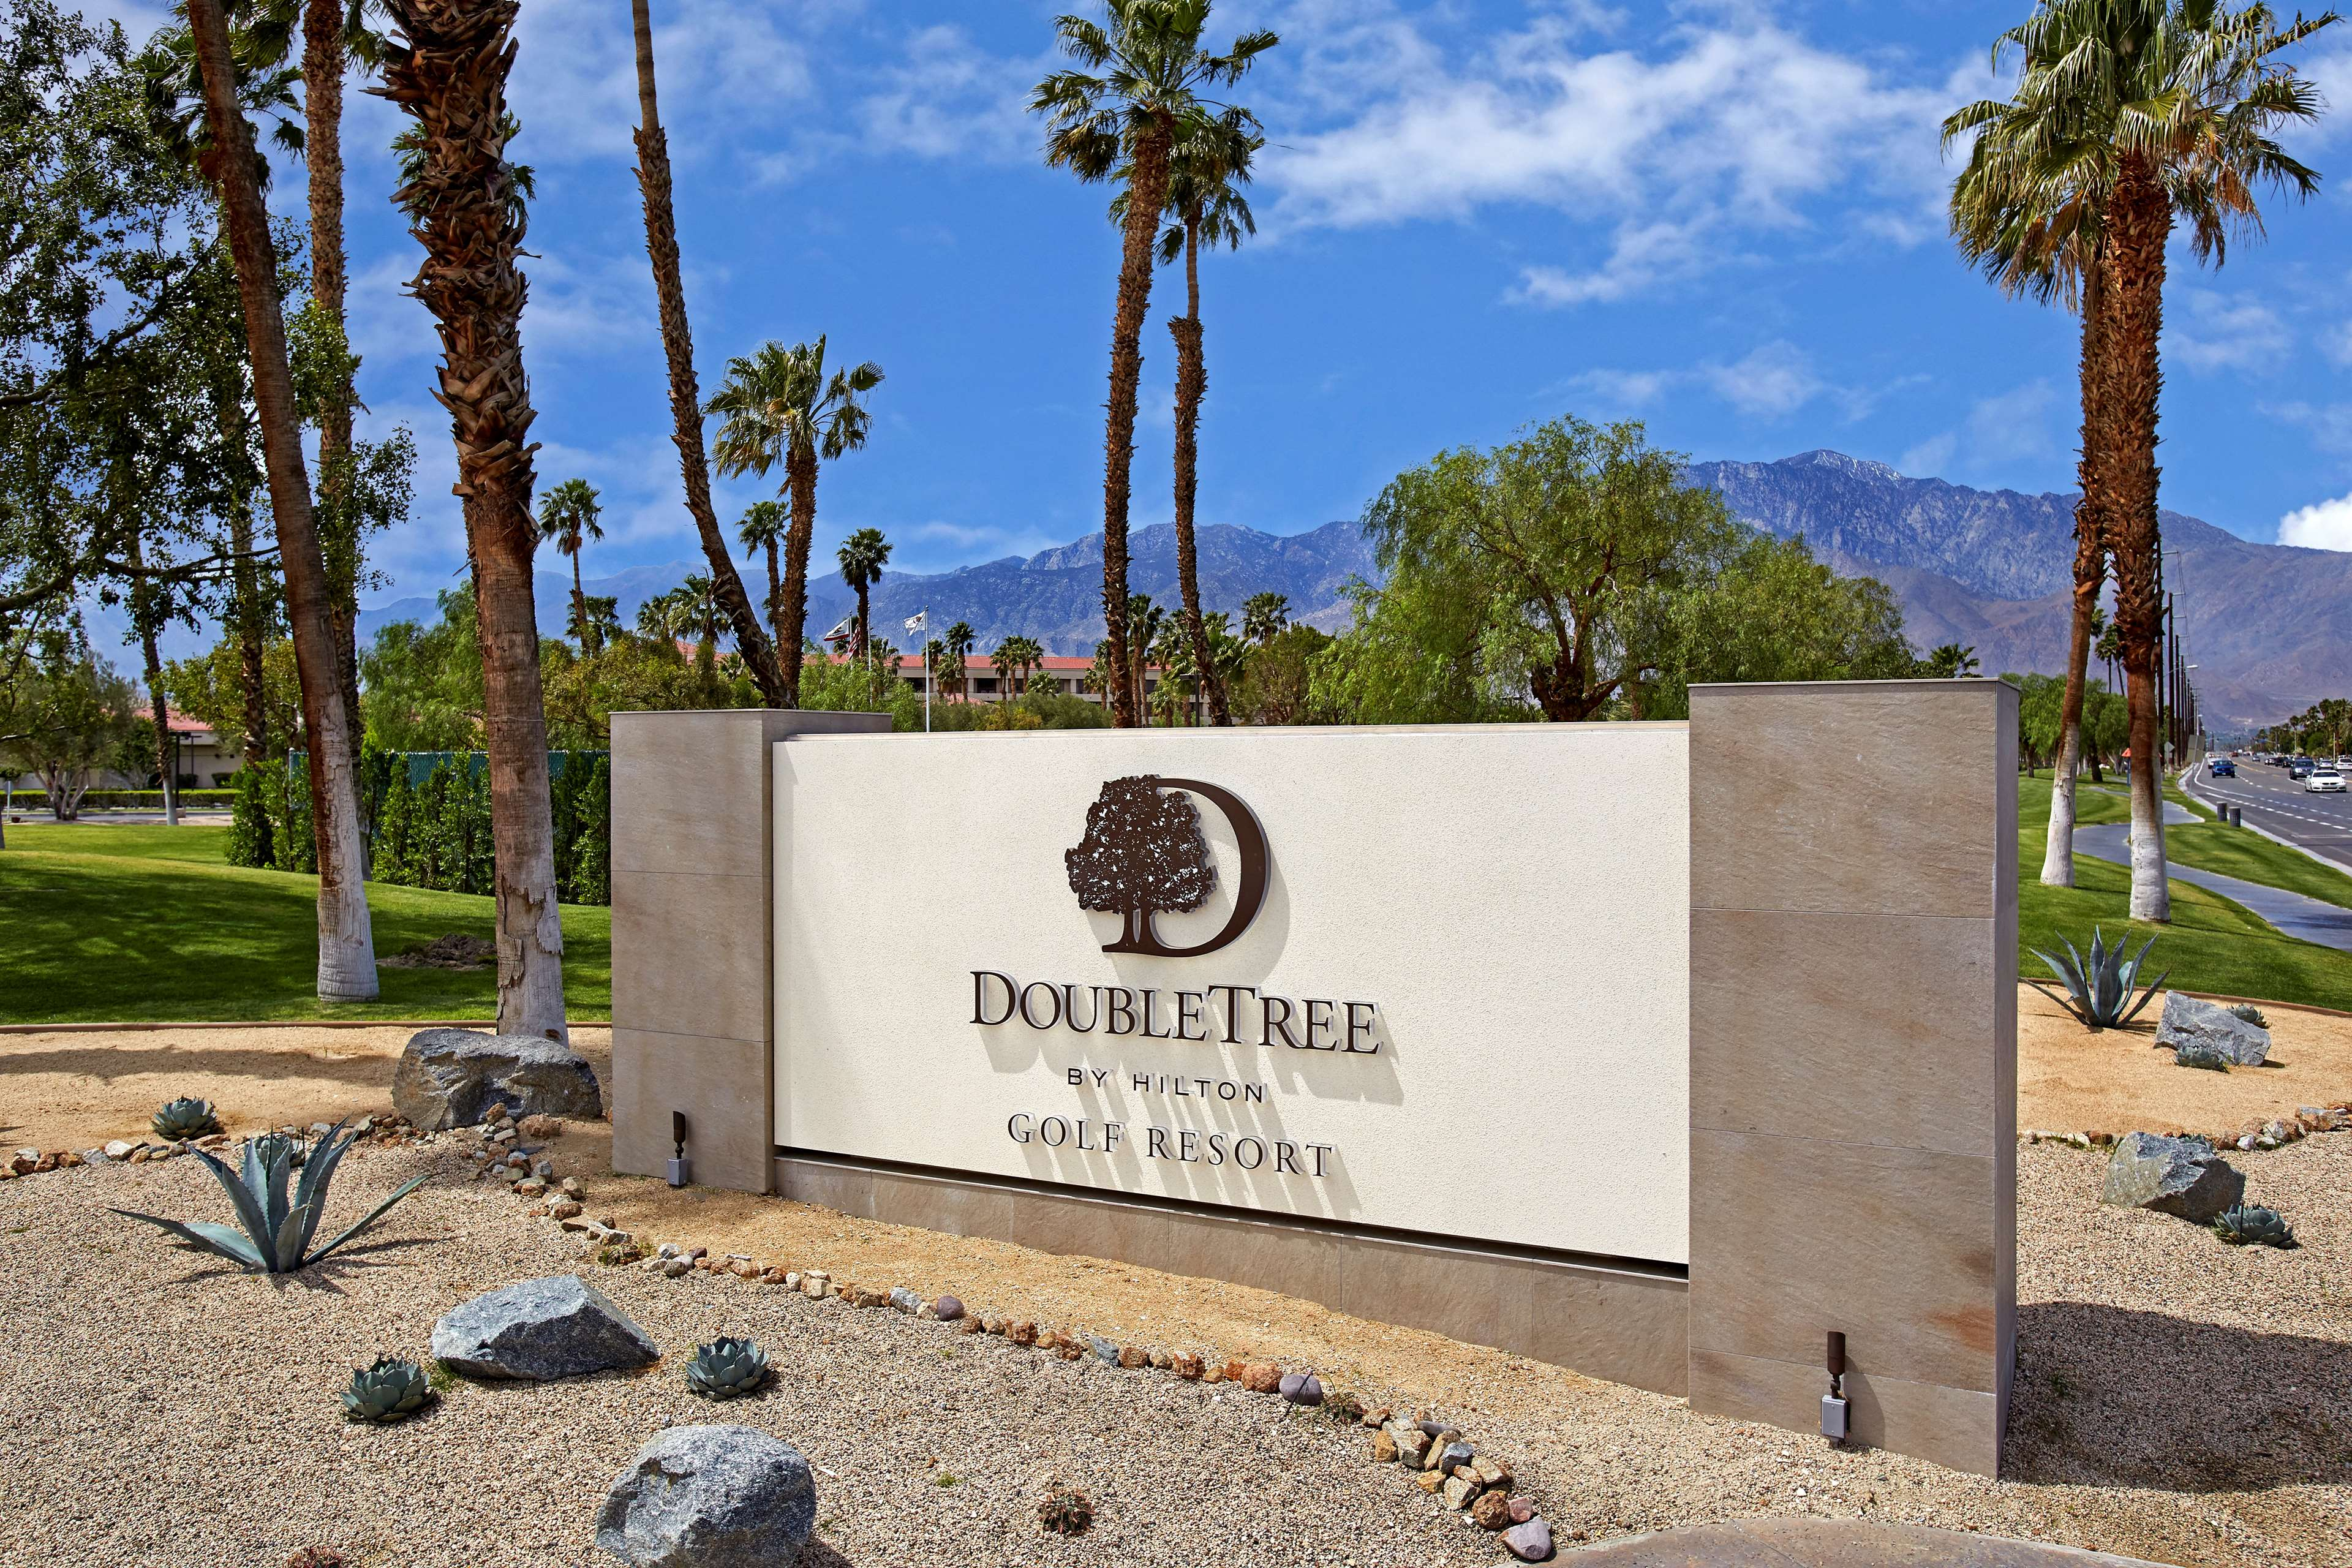 DoubleTree by Hilton Hotel Golf Resort Palm Springs image 3